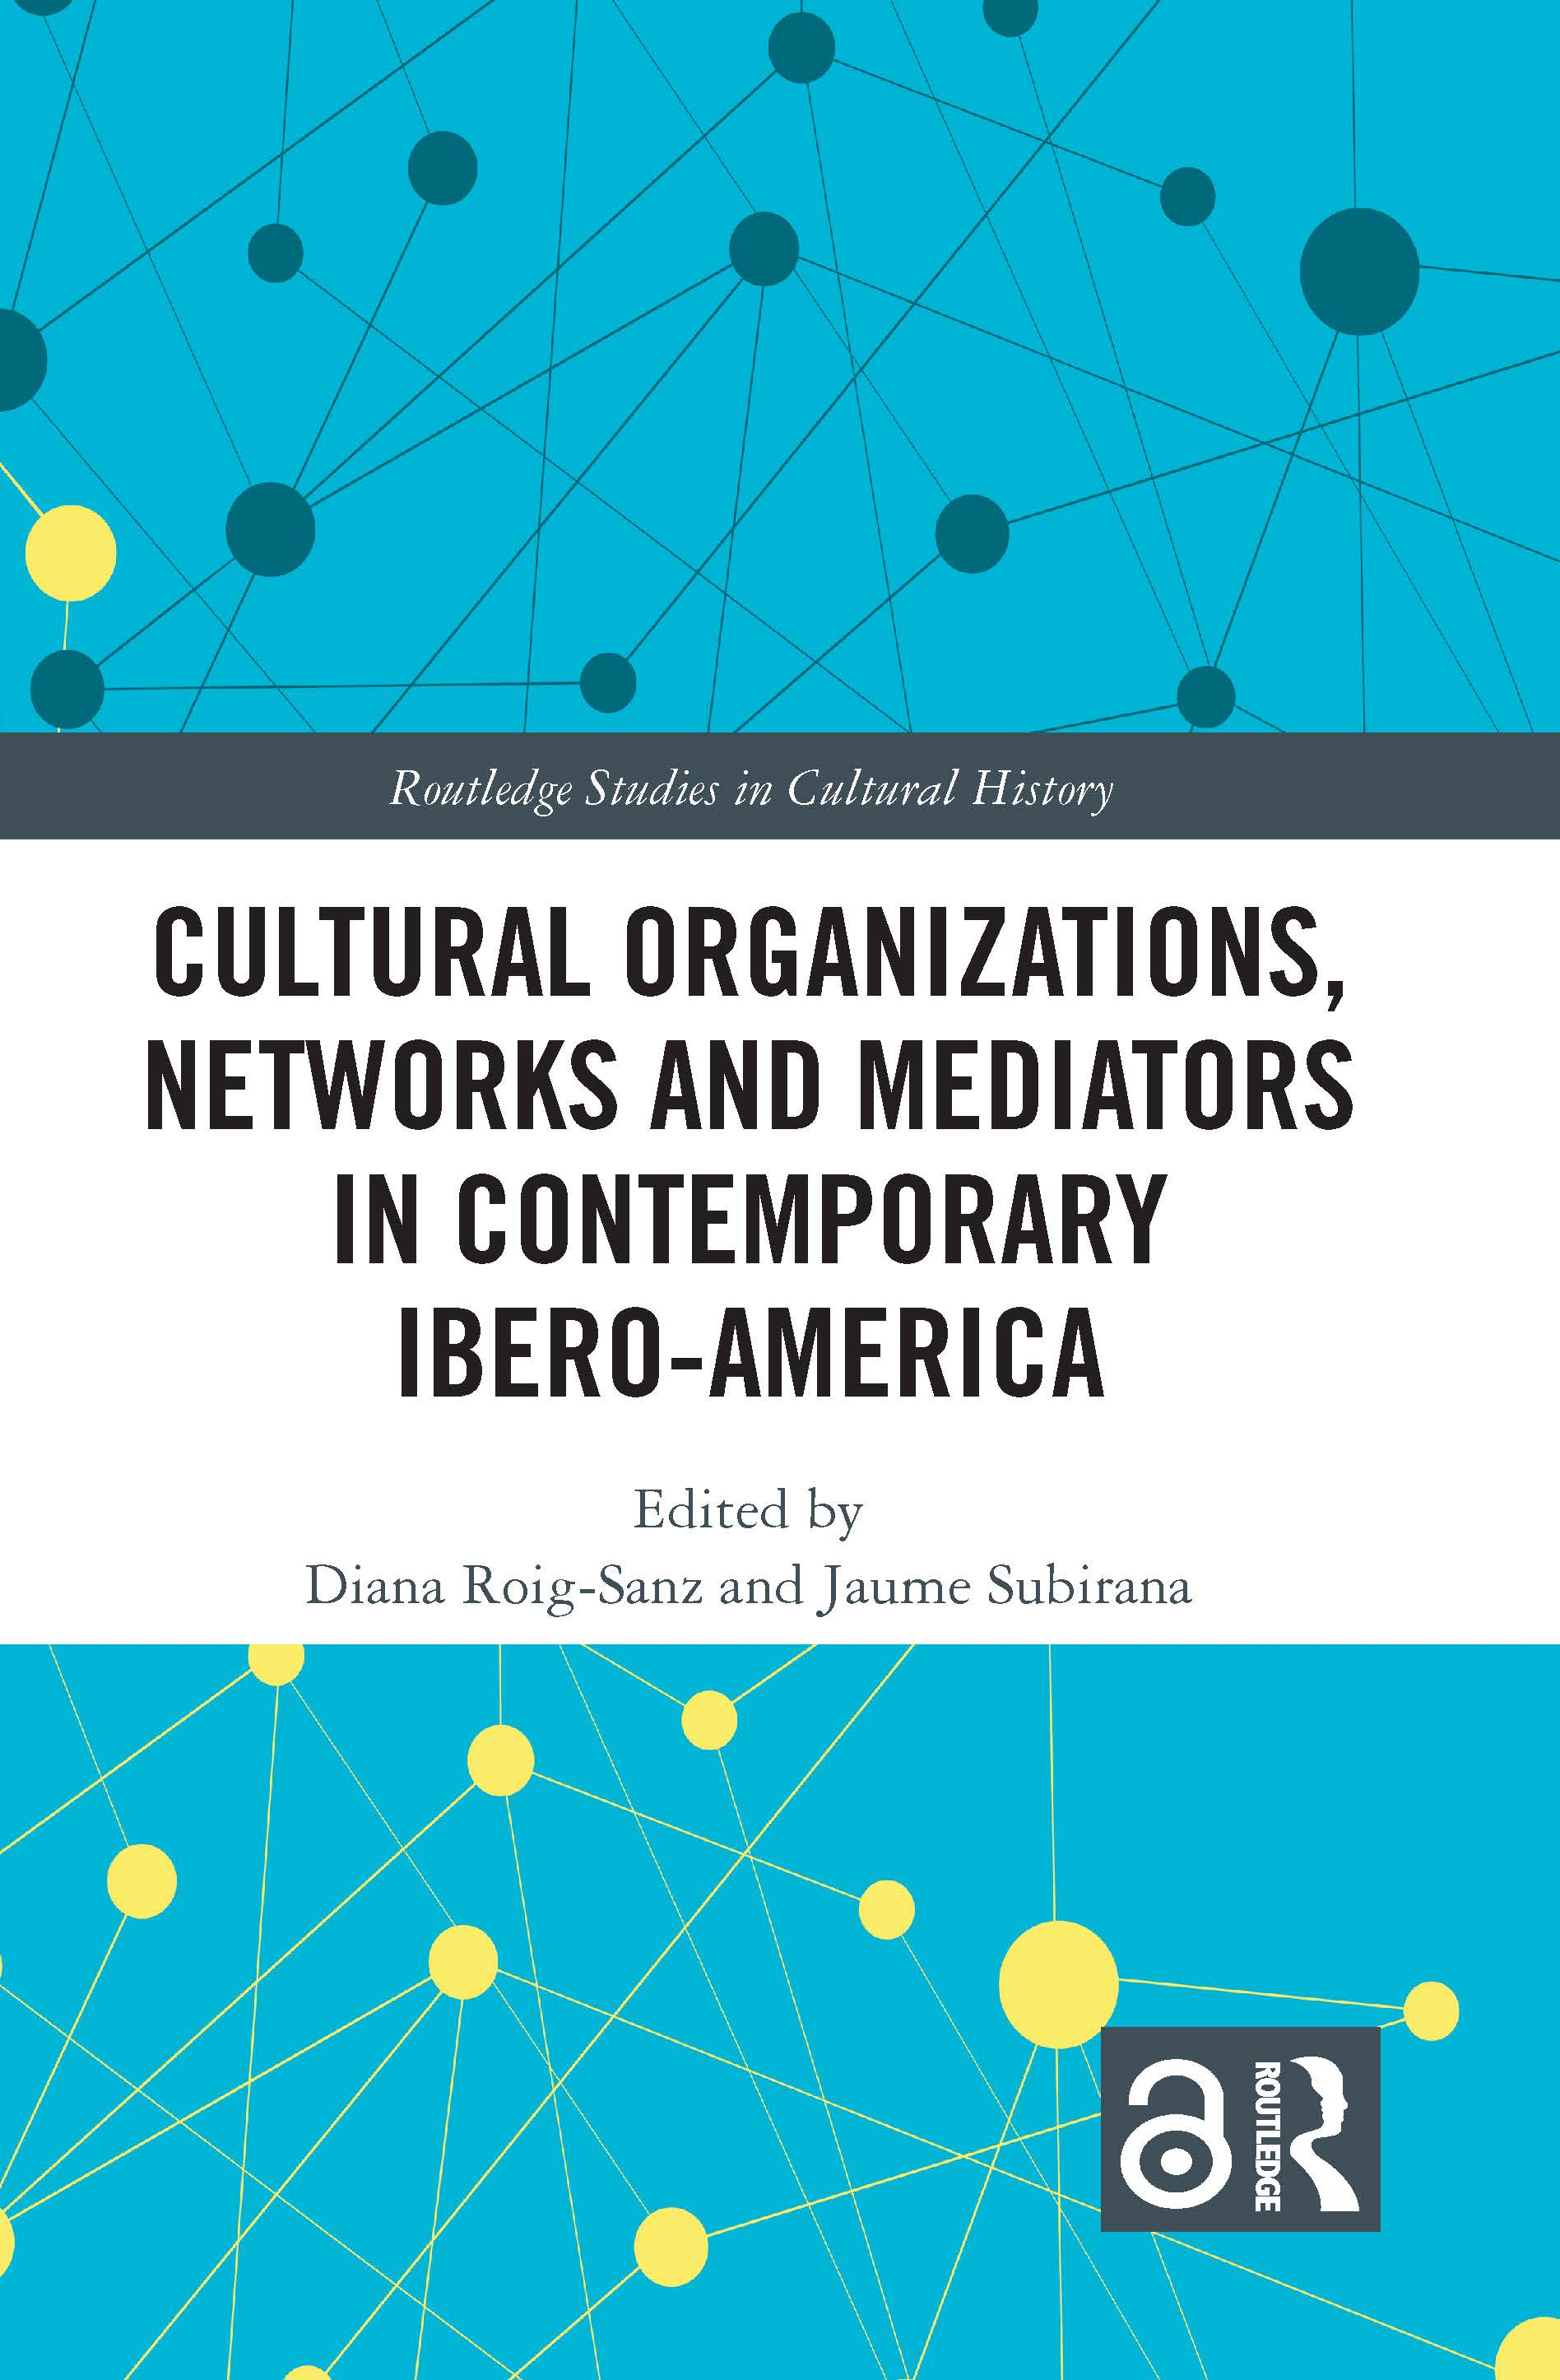 Cultural Organizations, Networks and Mediators in Contemporary Ibero-America: 1st Edition (Hardback) book cover